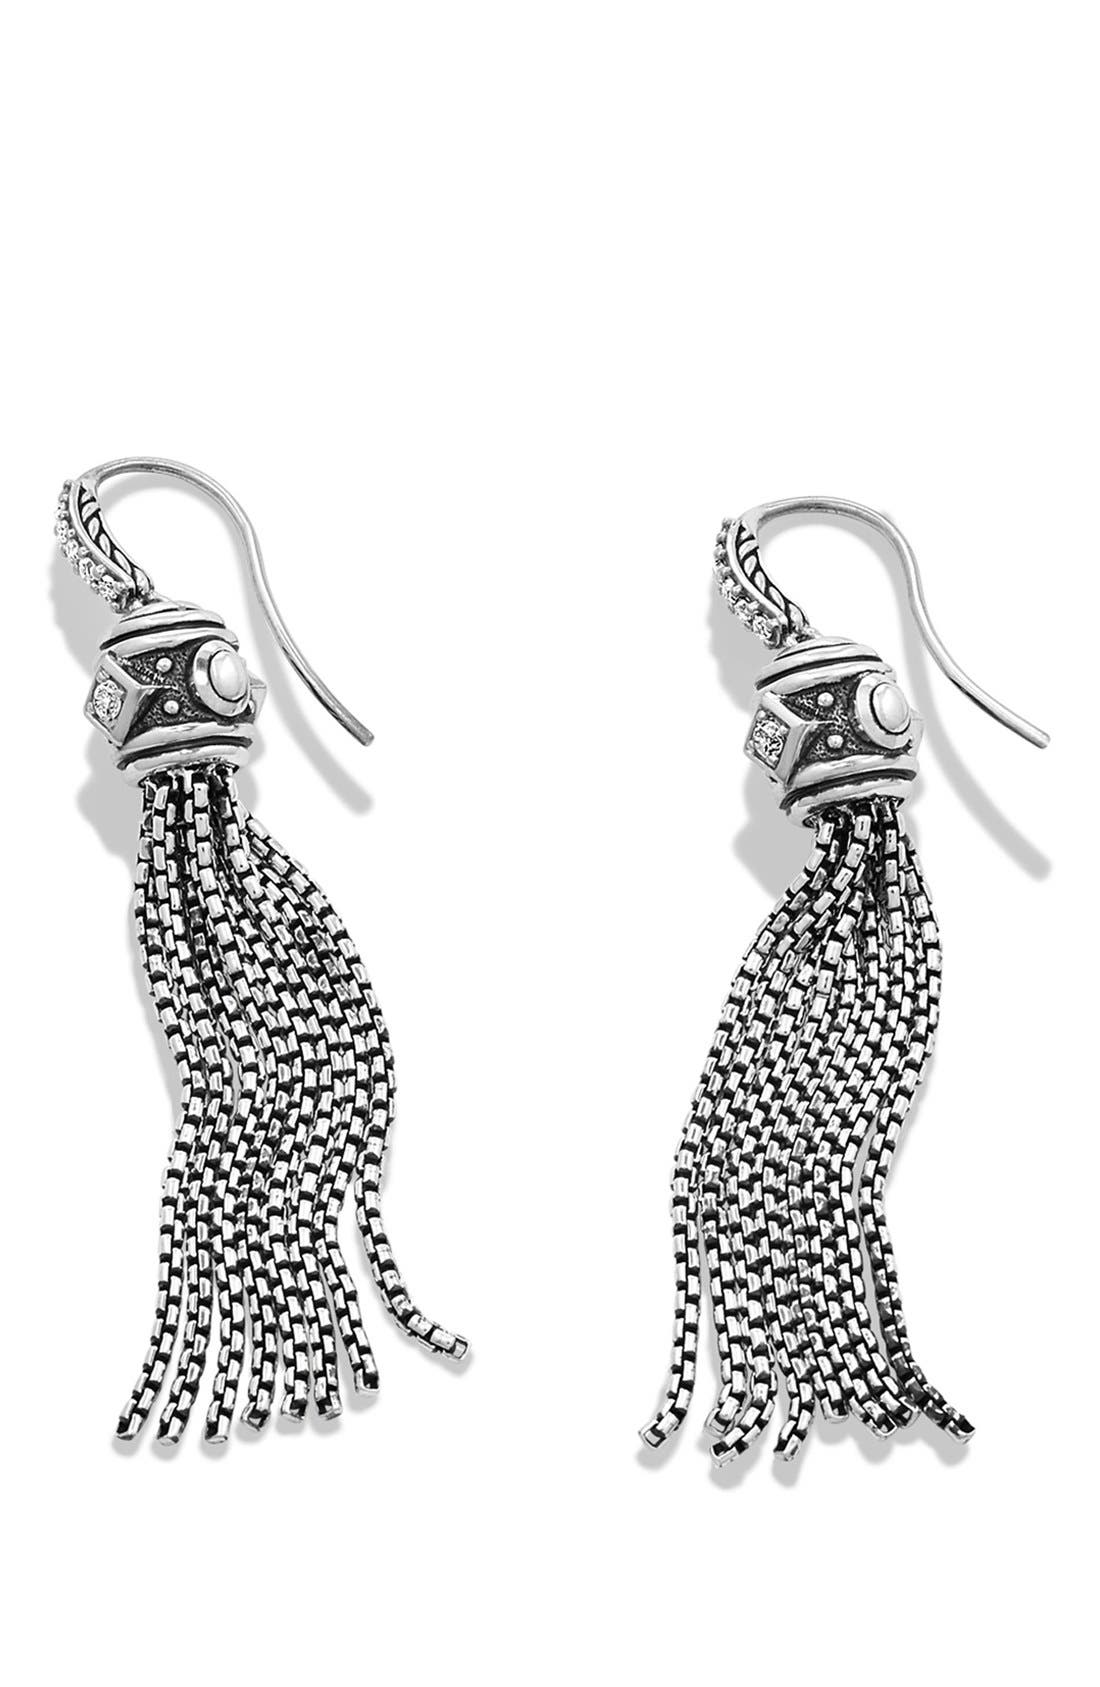 'Renaissance' Tassel Earrings with Diamonds in Silver,                             Alternate thumbnail 2, color,                             Diamond